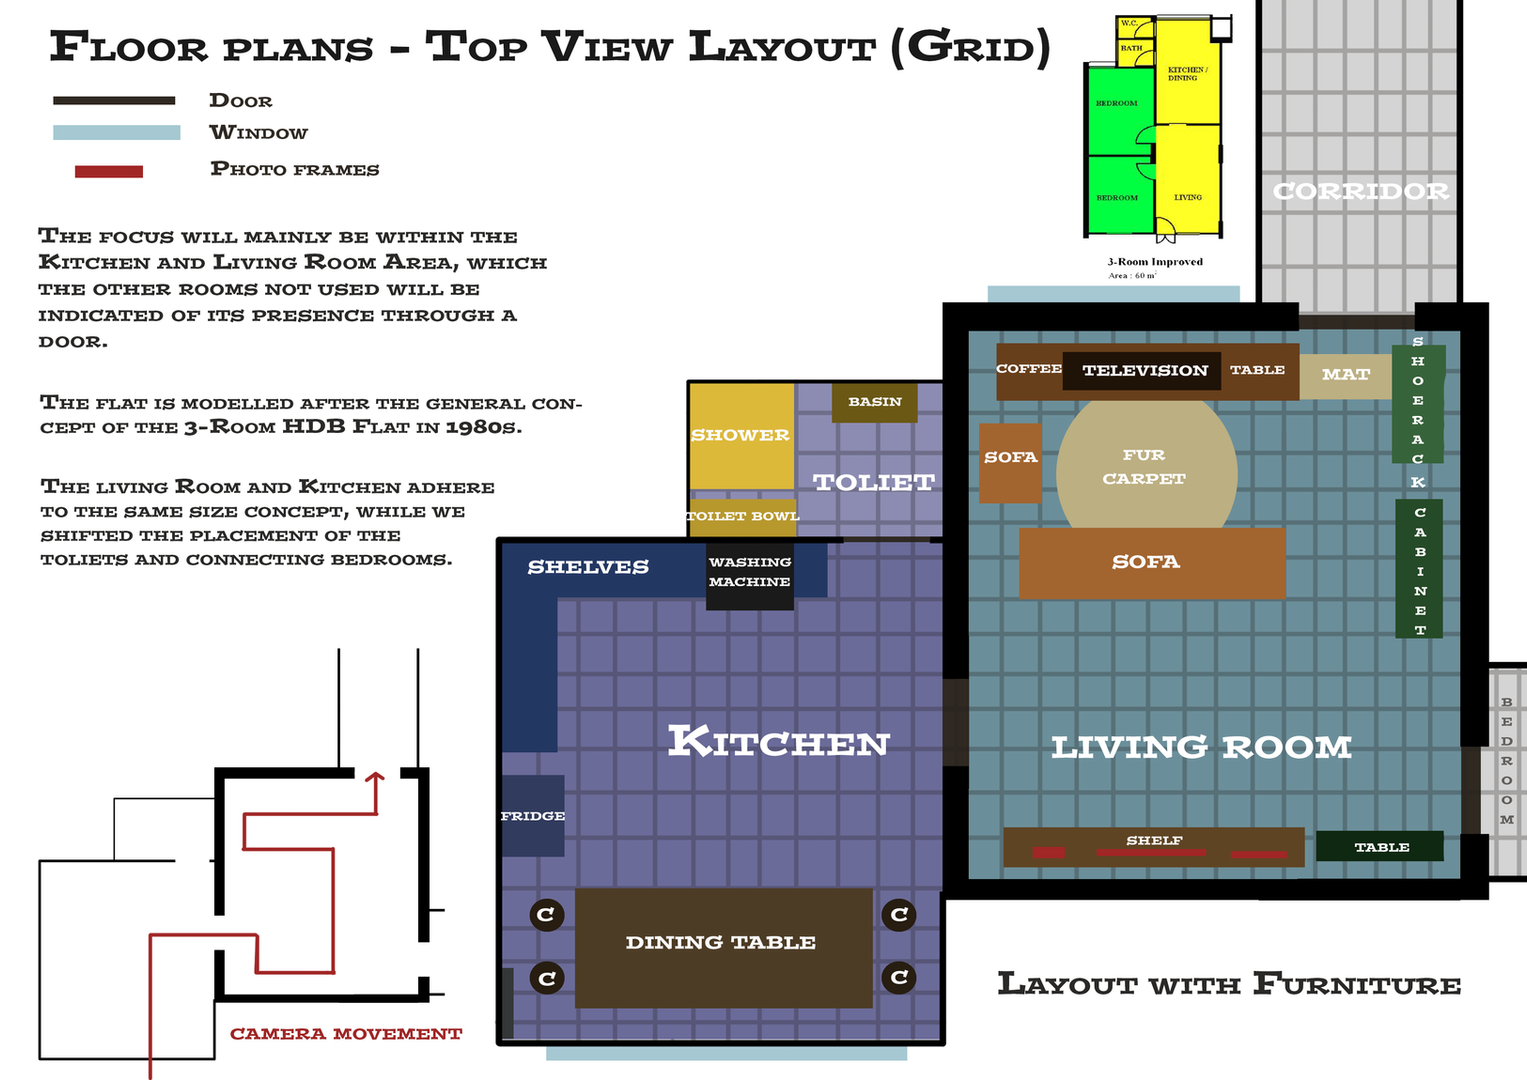 Floor Plans With Grid.png